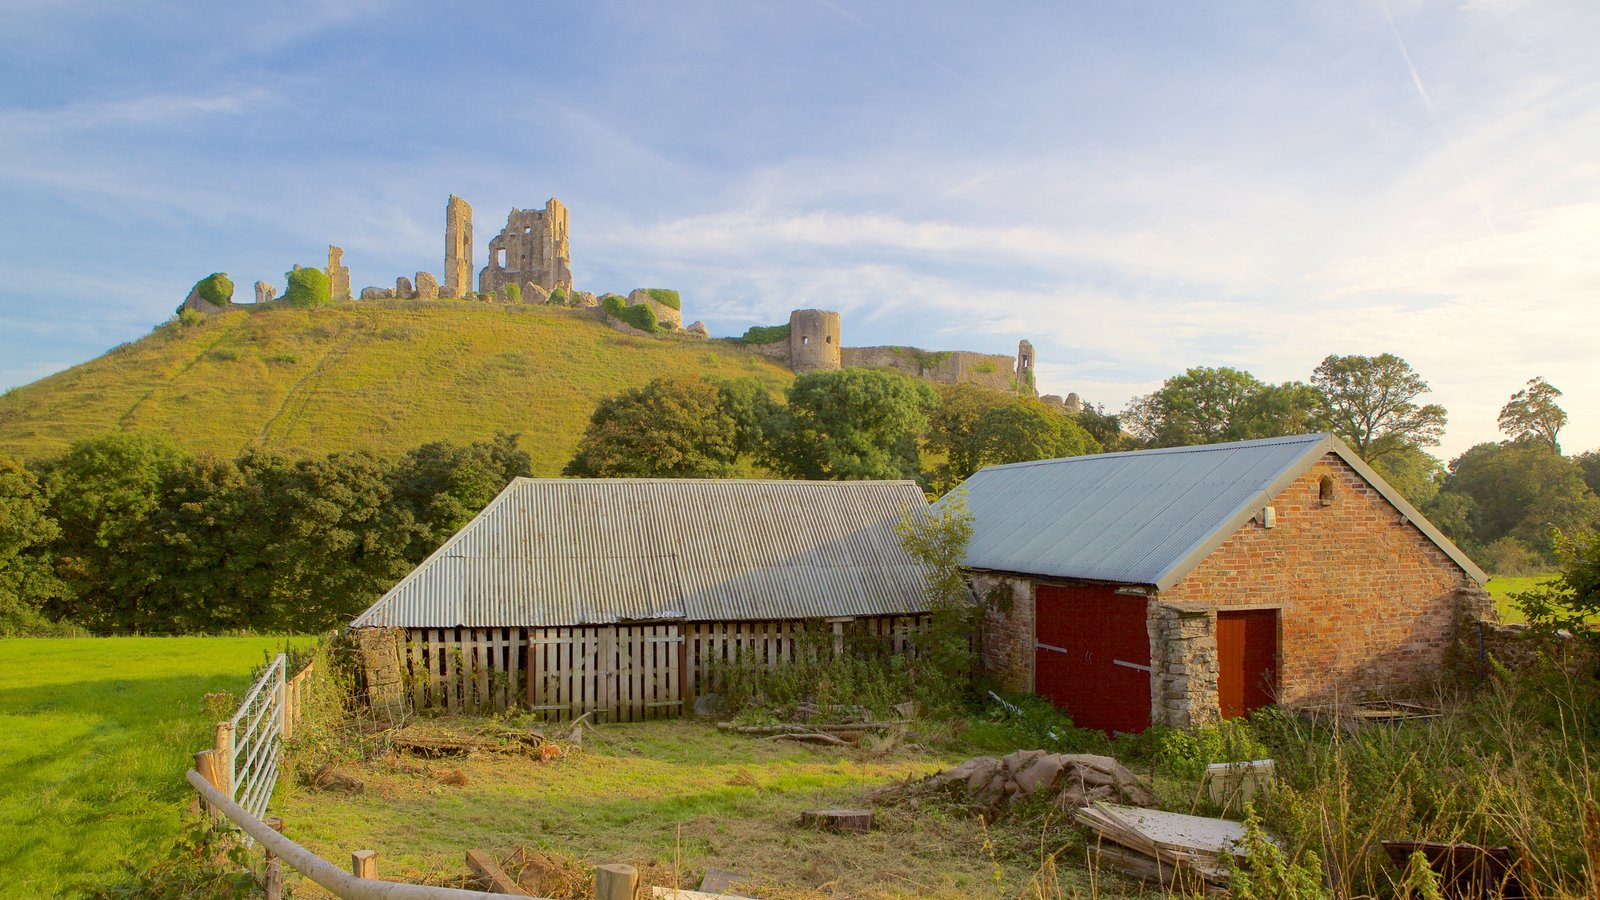 Corfe Castle featuring a house, heritage elements and building ruins